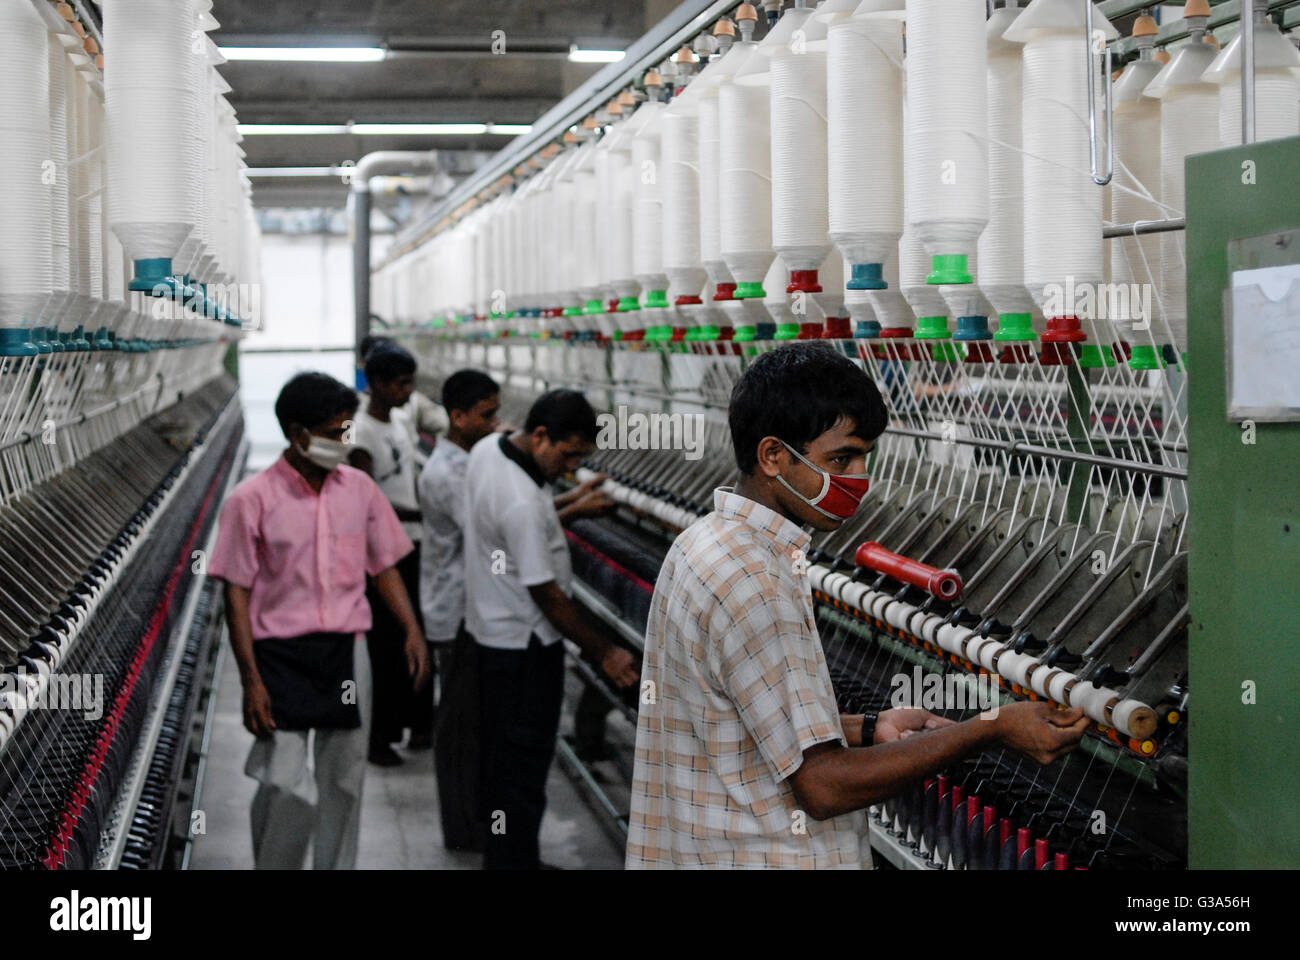 Sweatshop Bangladesh Stock Photos & Sweatshop Bangladesh